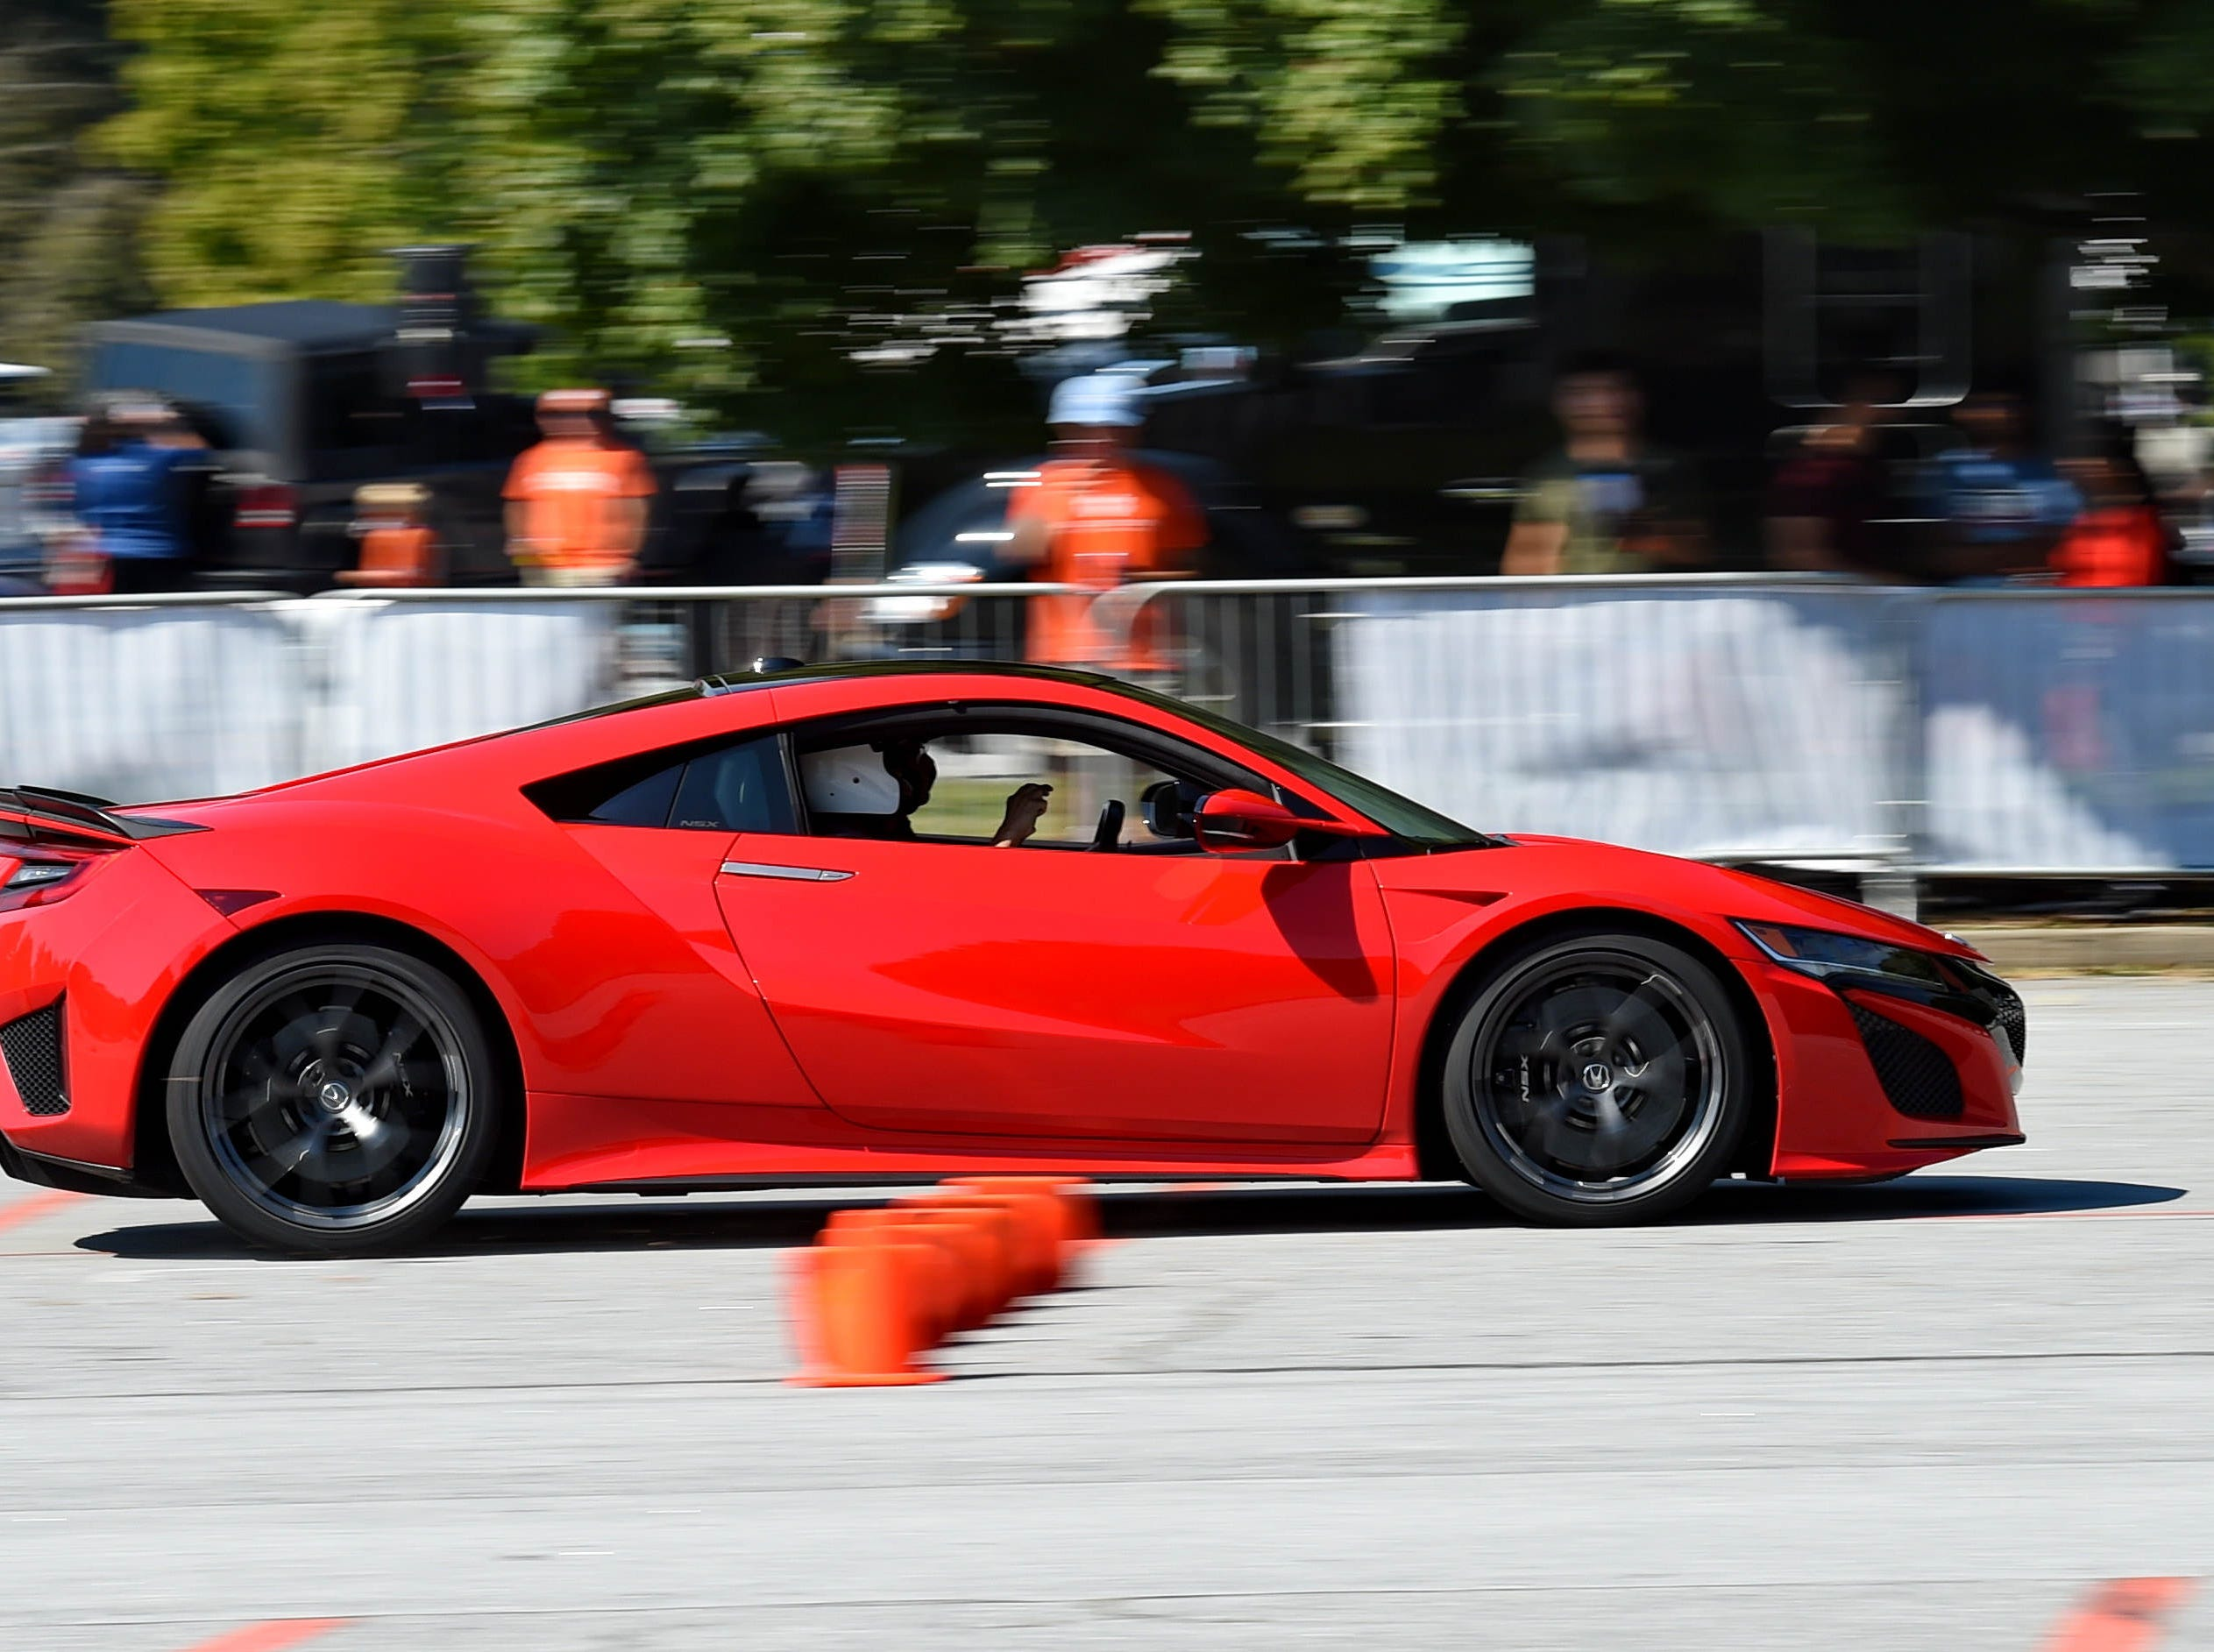 Professional driver for Honda, Dennis Grisez takes participants out for a hot lap during an event to unveil the new Deep Orange 9 rally car by CU-ICAR Saturday, October 6,  2018.